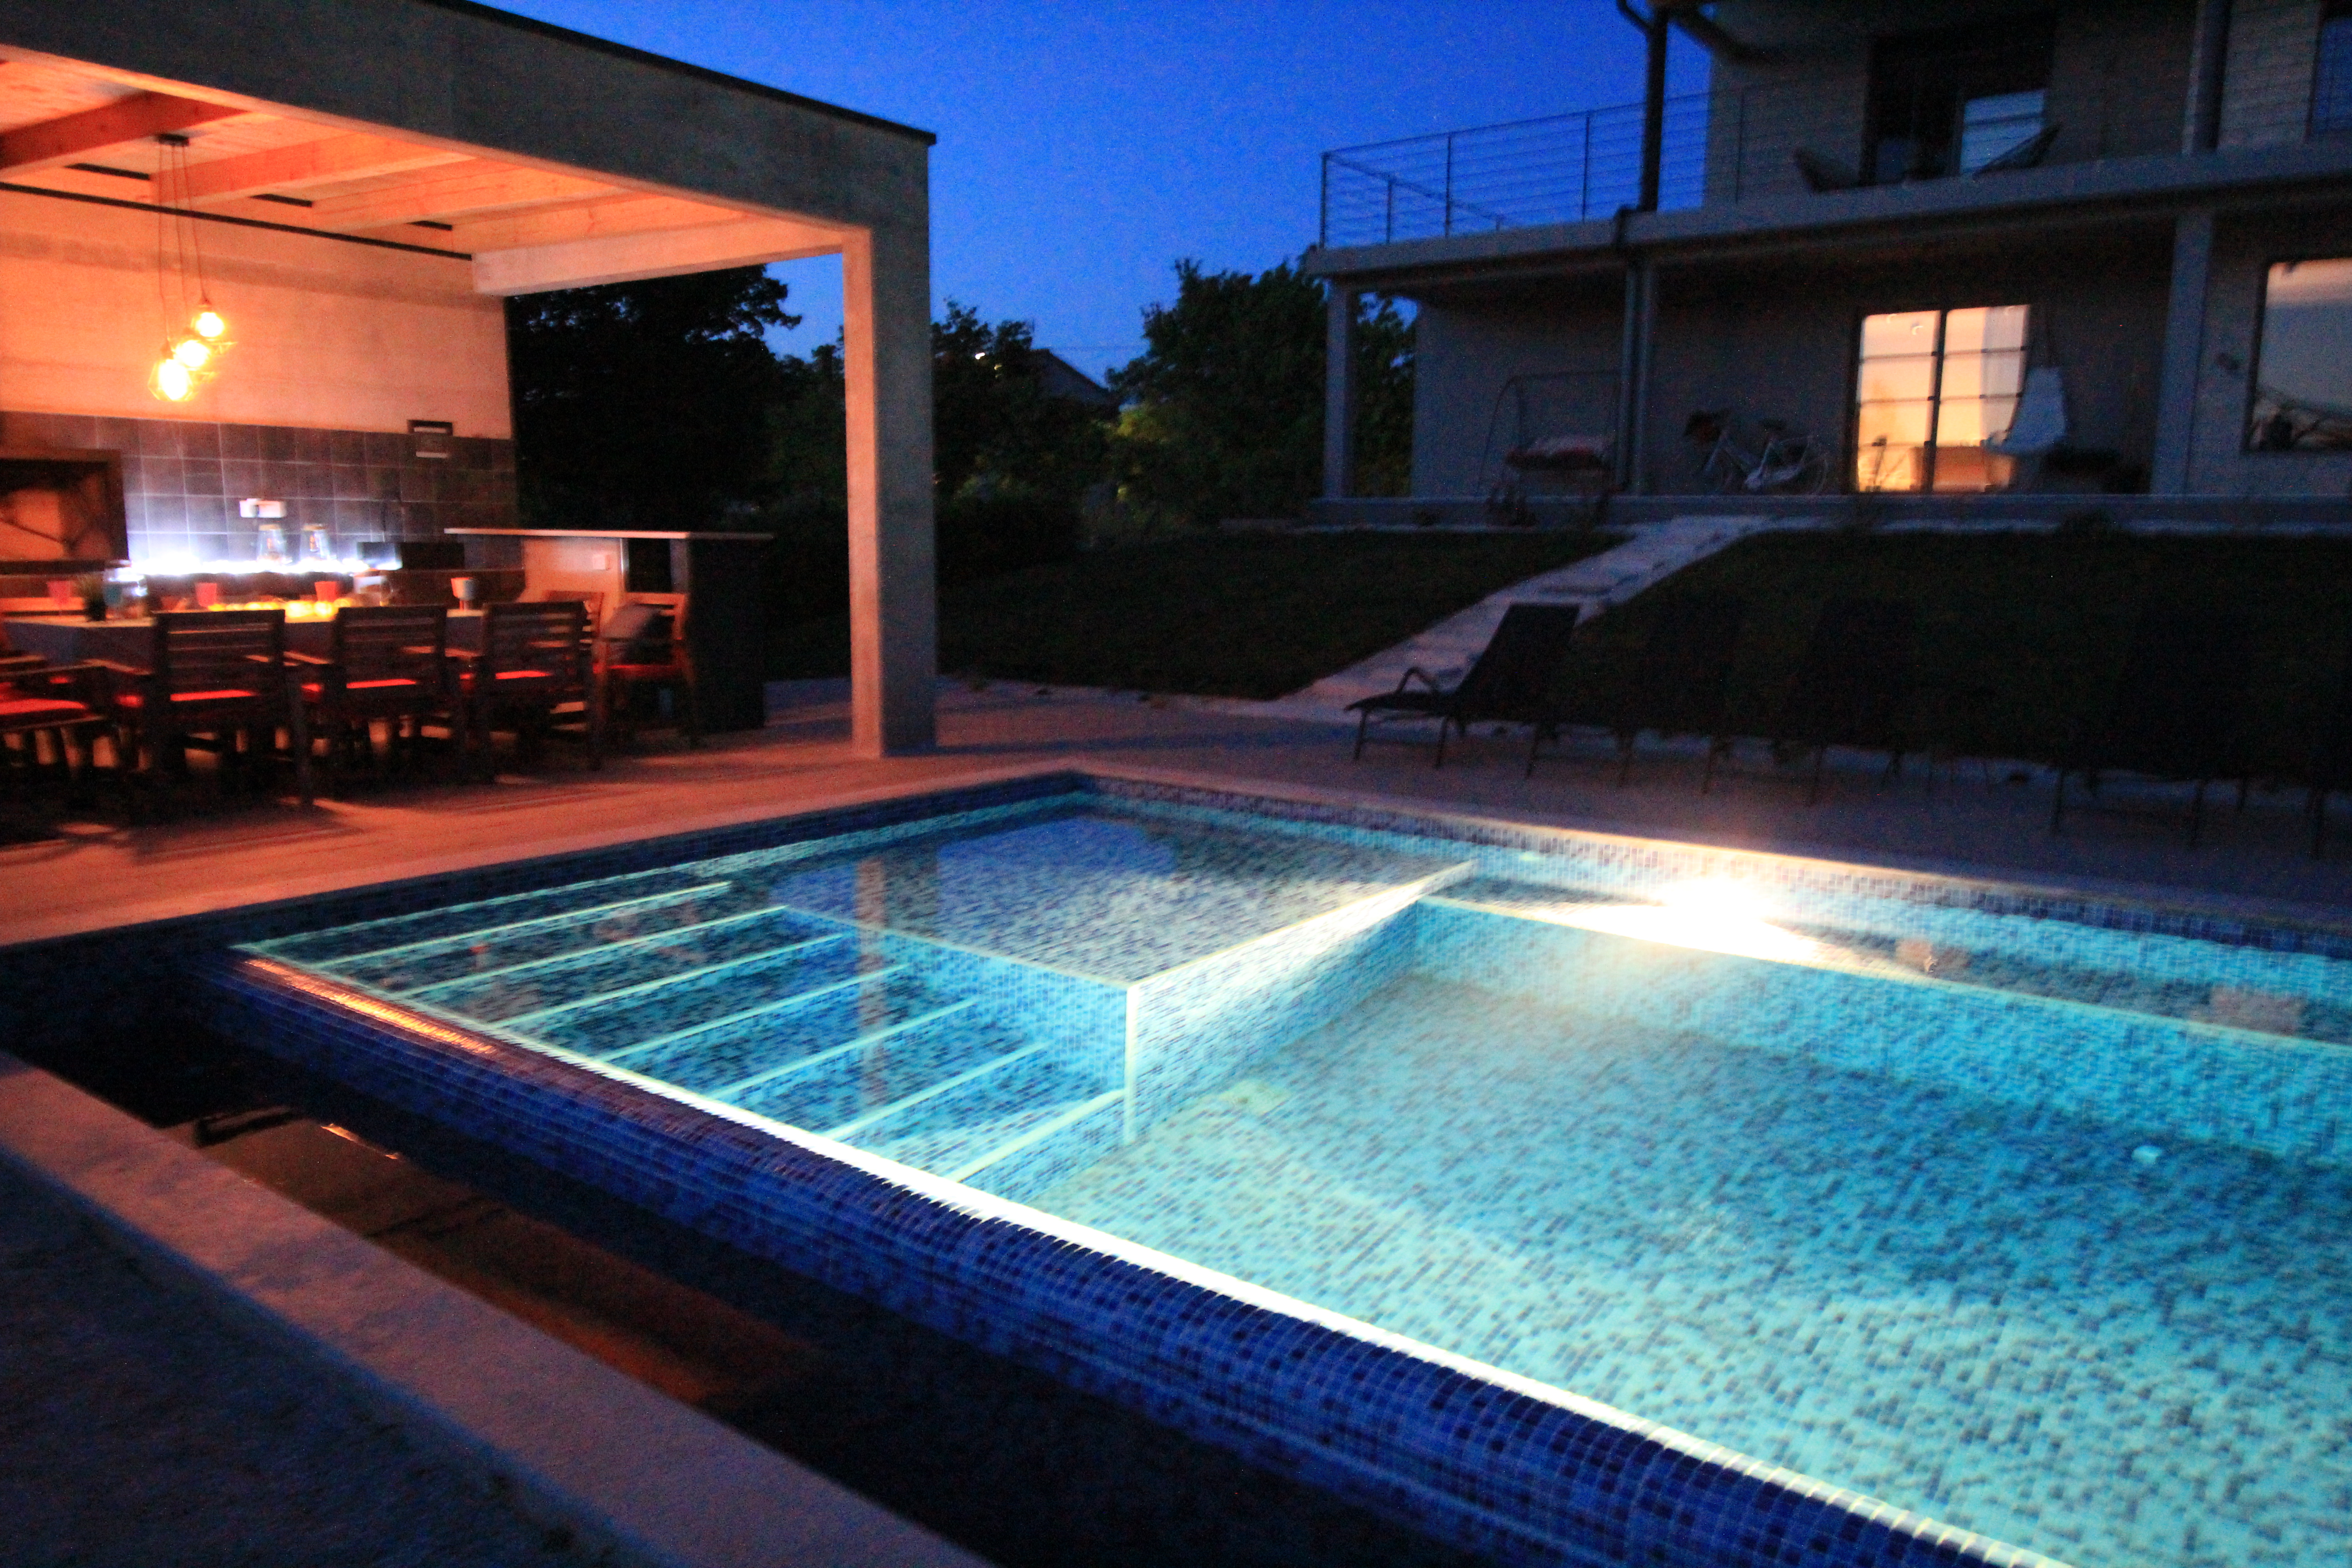 Night pool outdoor bbq vilal2m